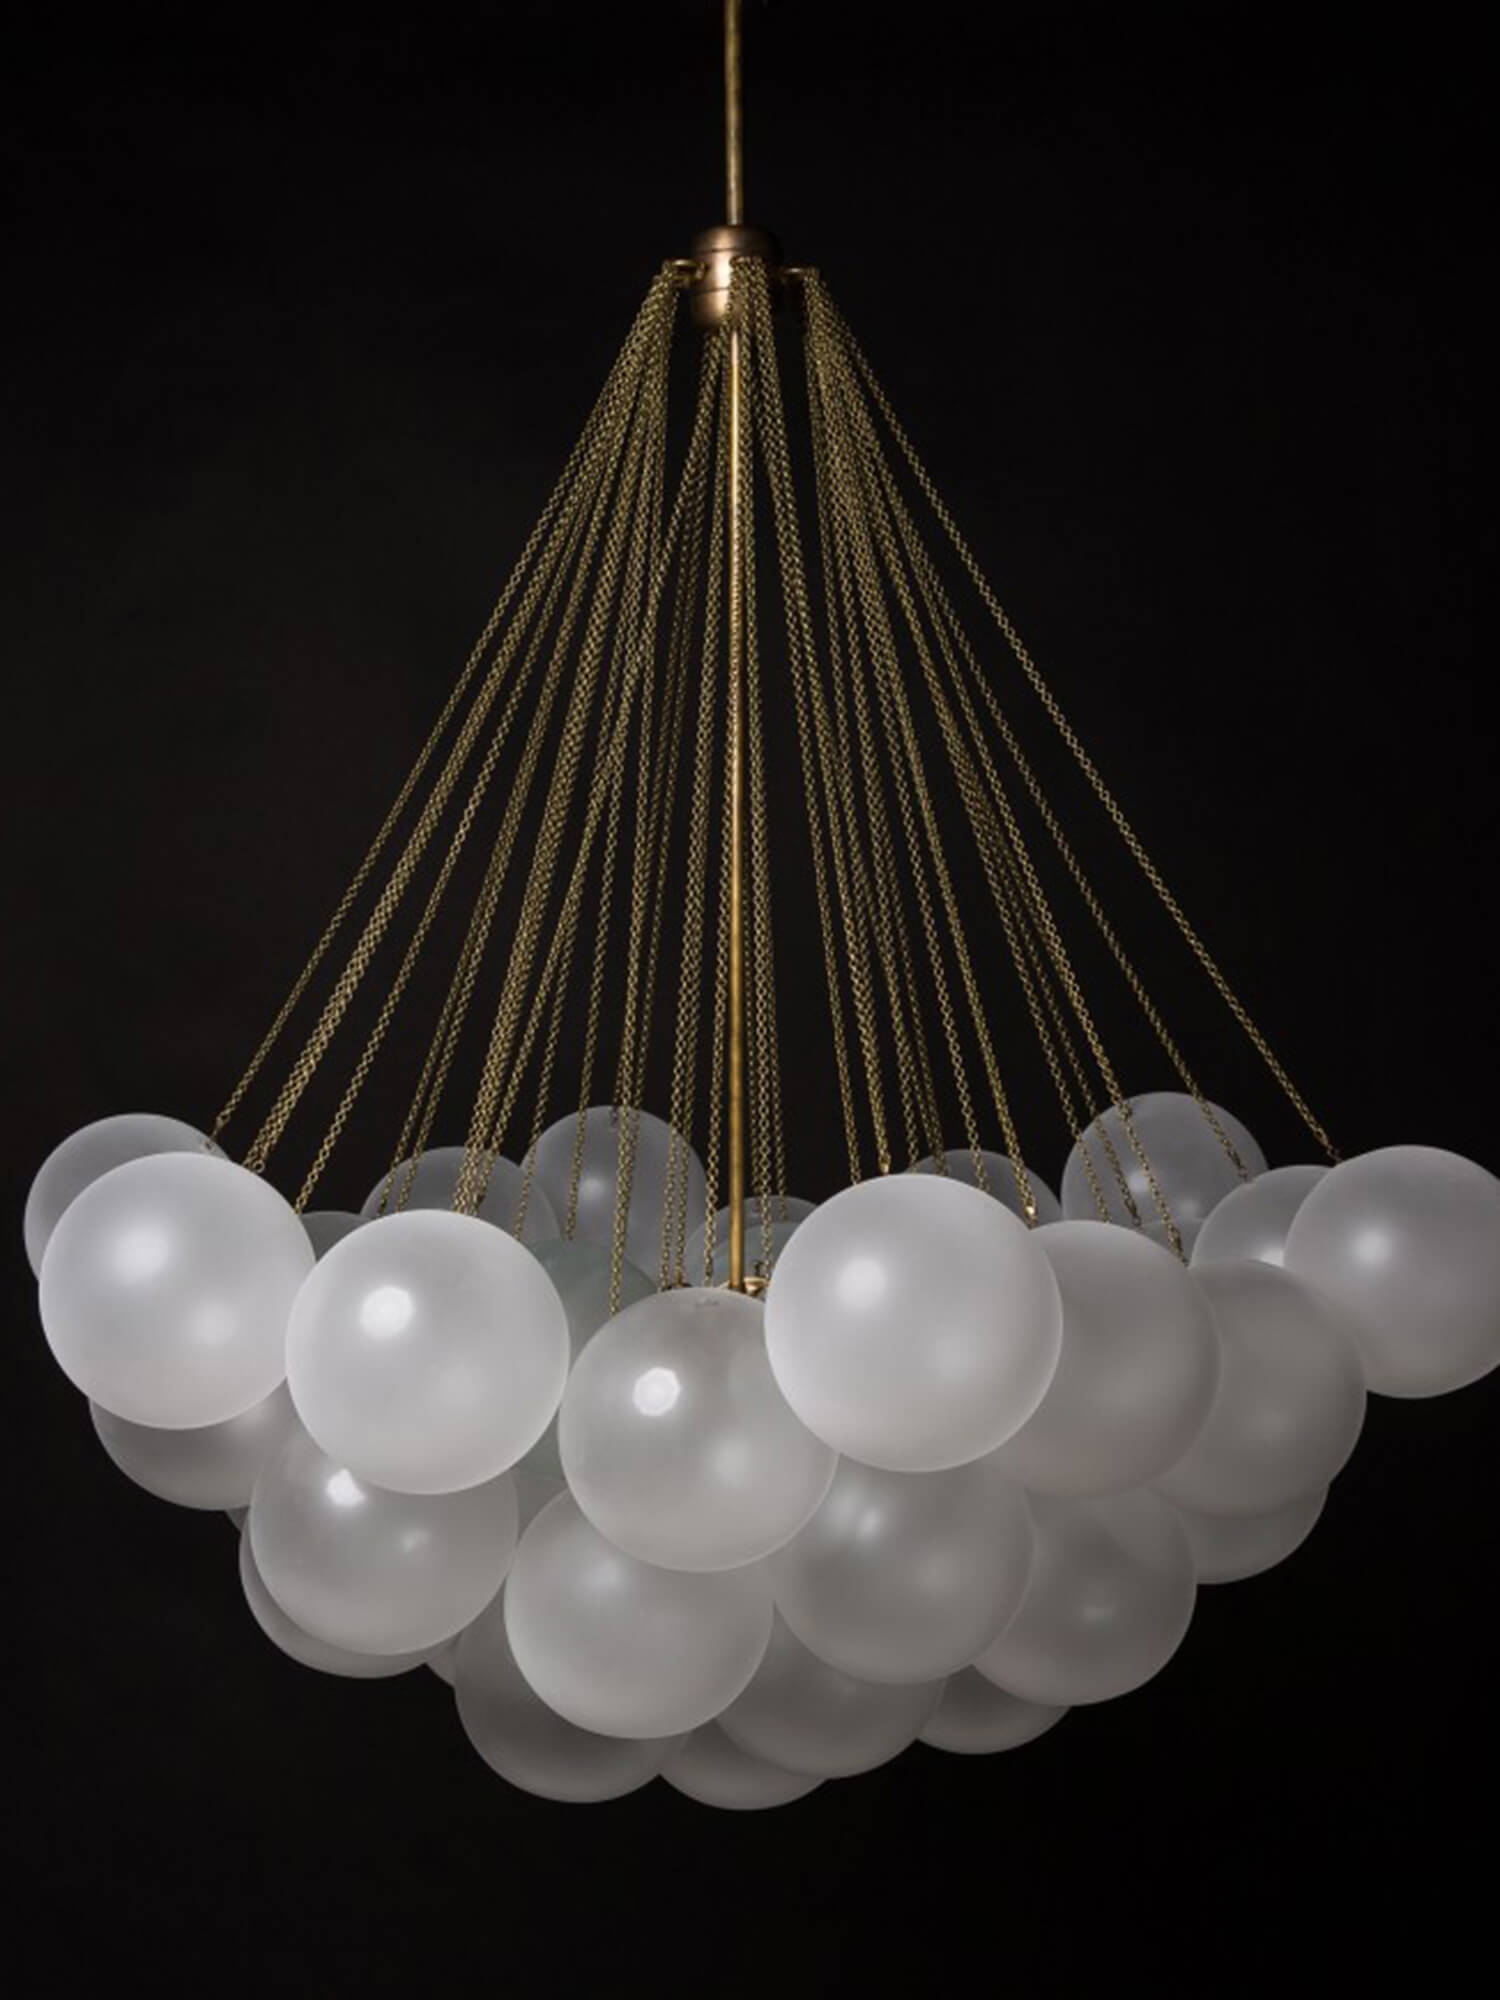 Cloud 37 Chandelier Apparatus